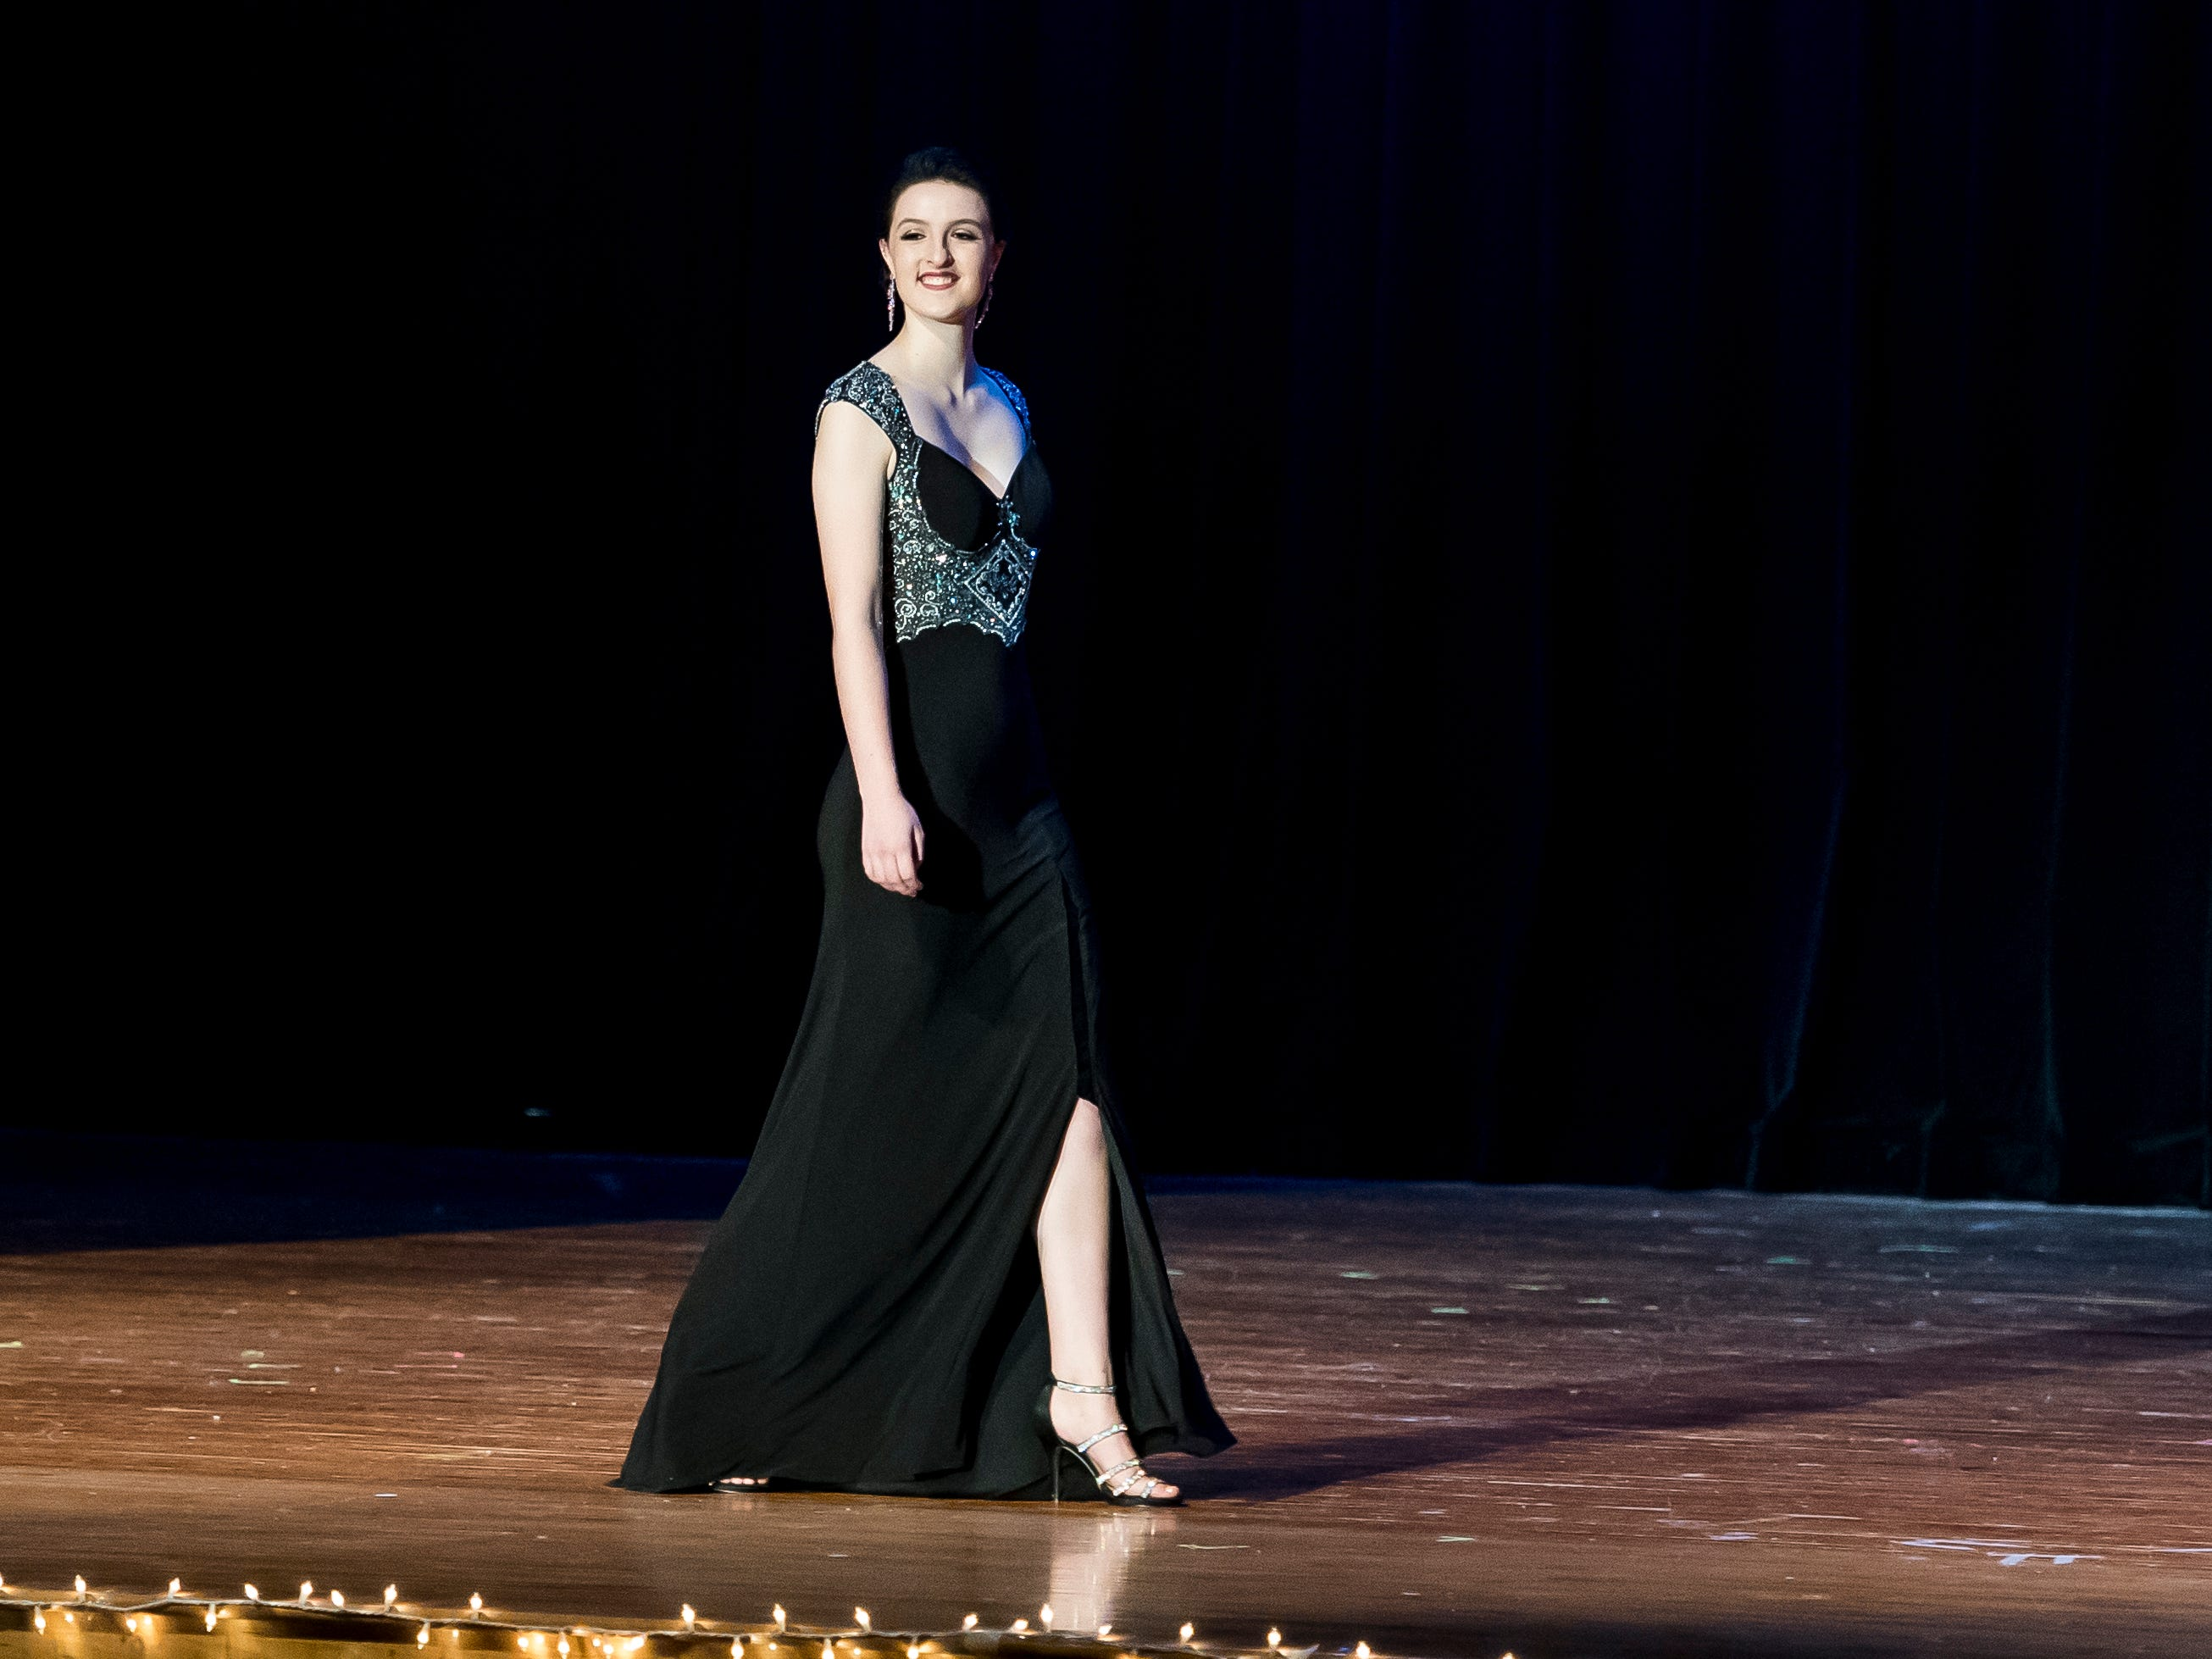 Hannah Uhl walks on stage during the evening gown competition in the 50th Miss Hanover Area pageant on Monday, October 22, 2018.